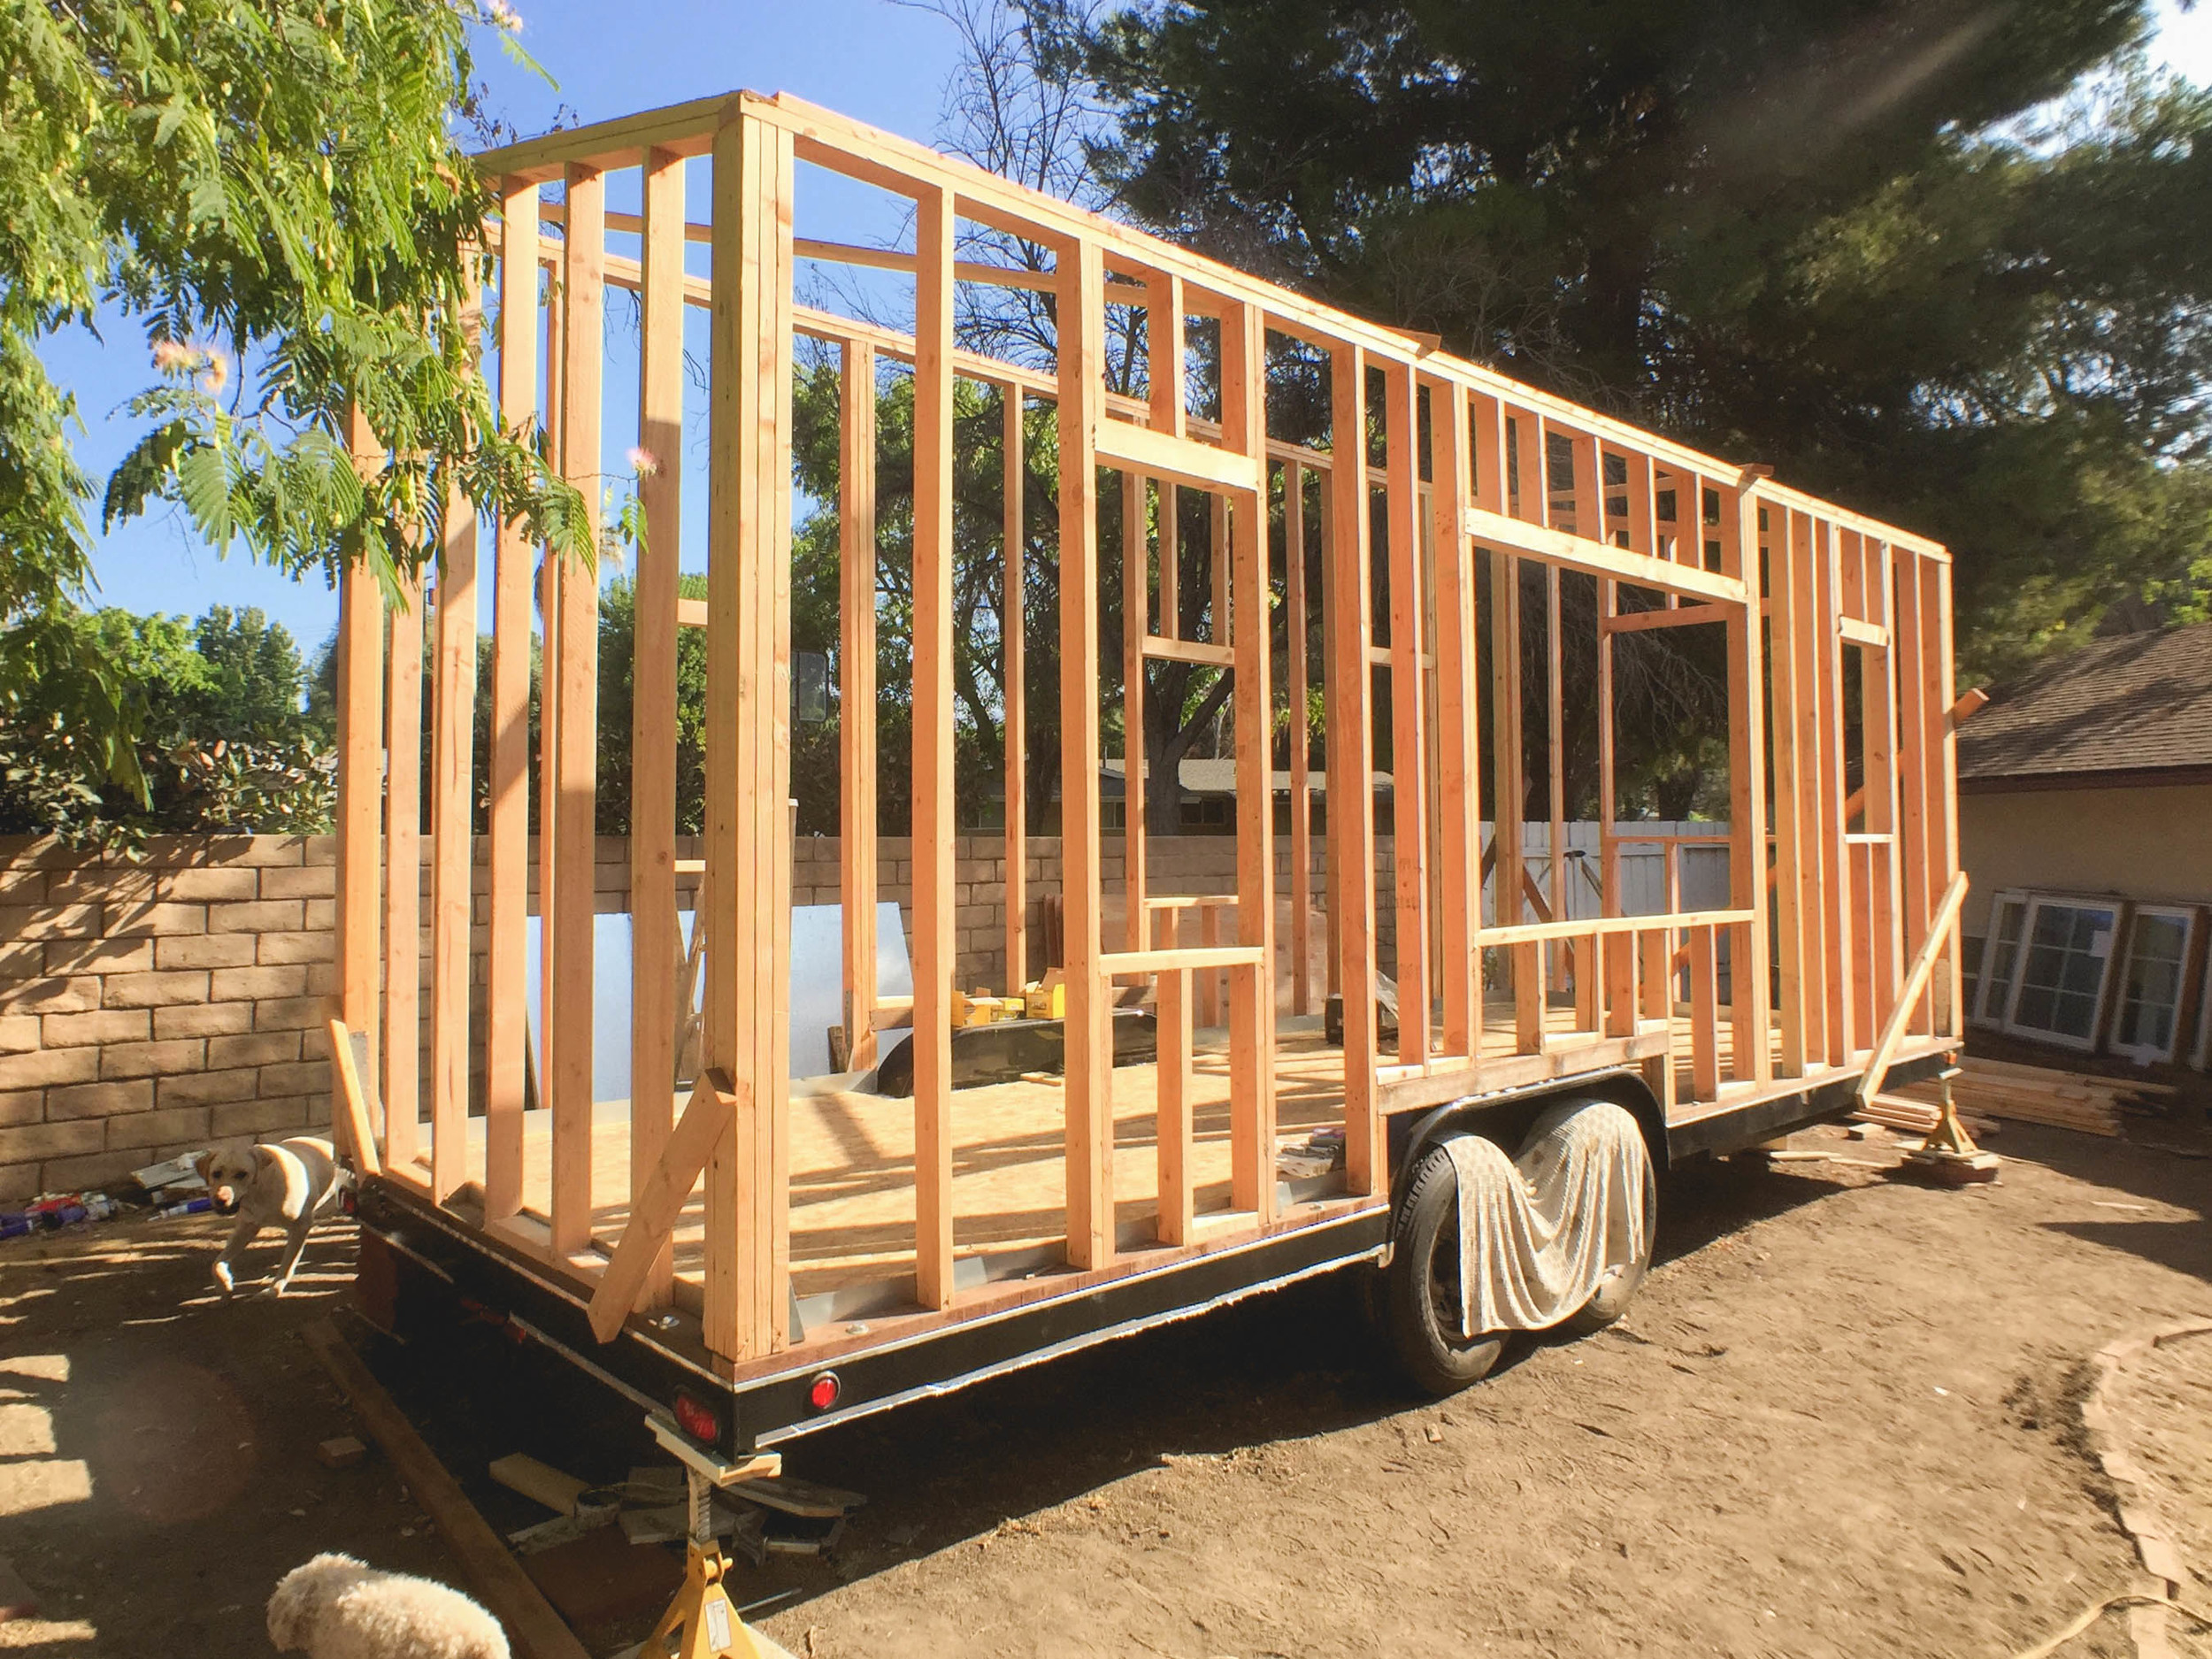 Done! Next comes the roof and sheathing!